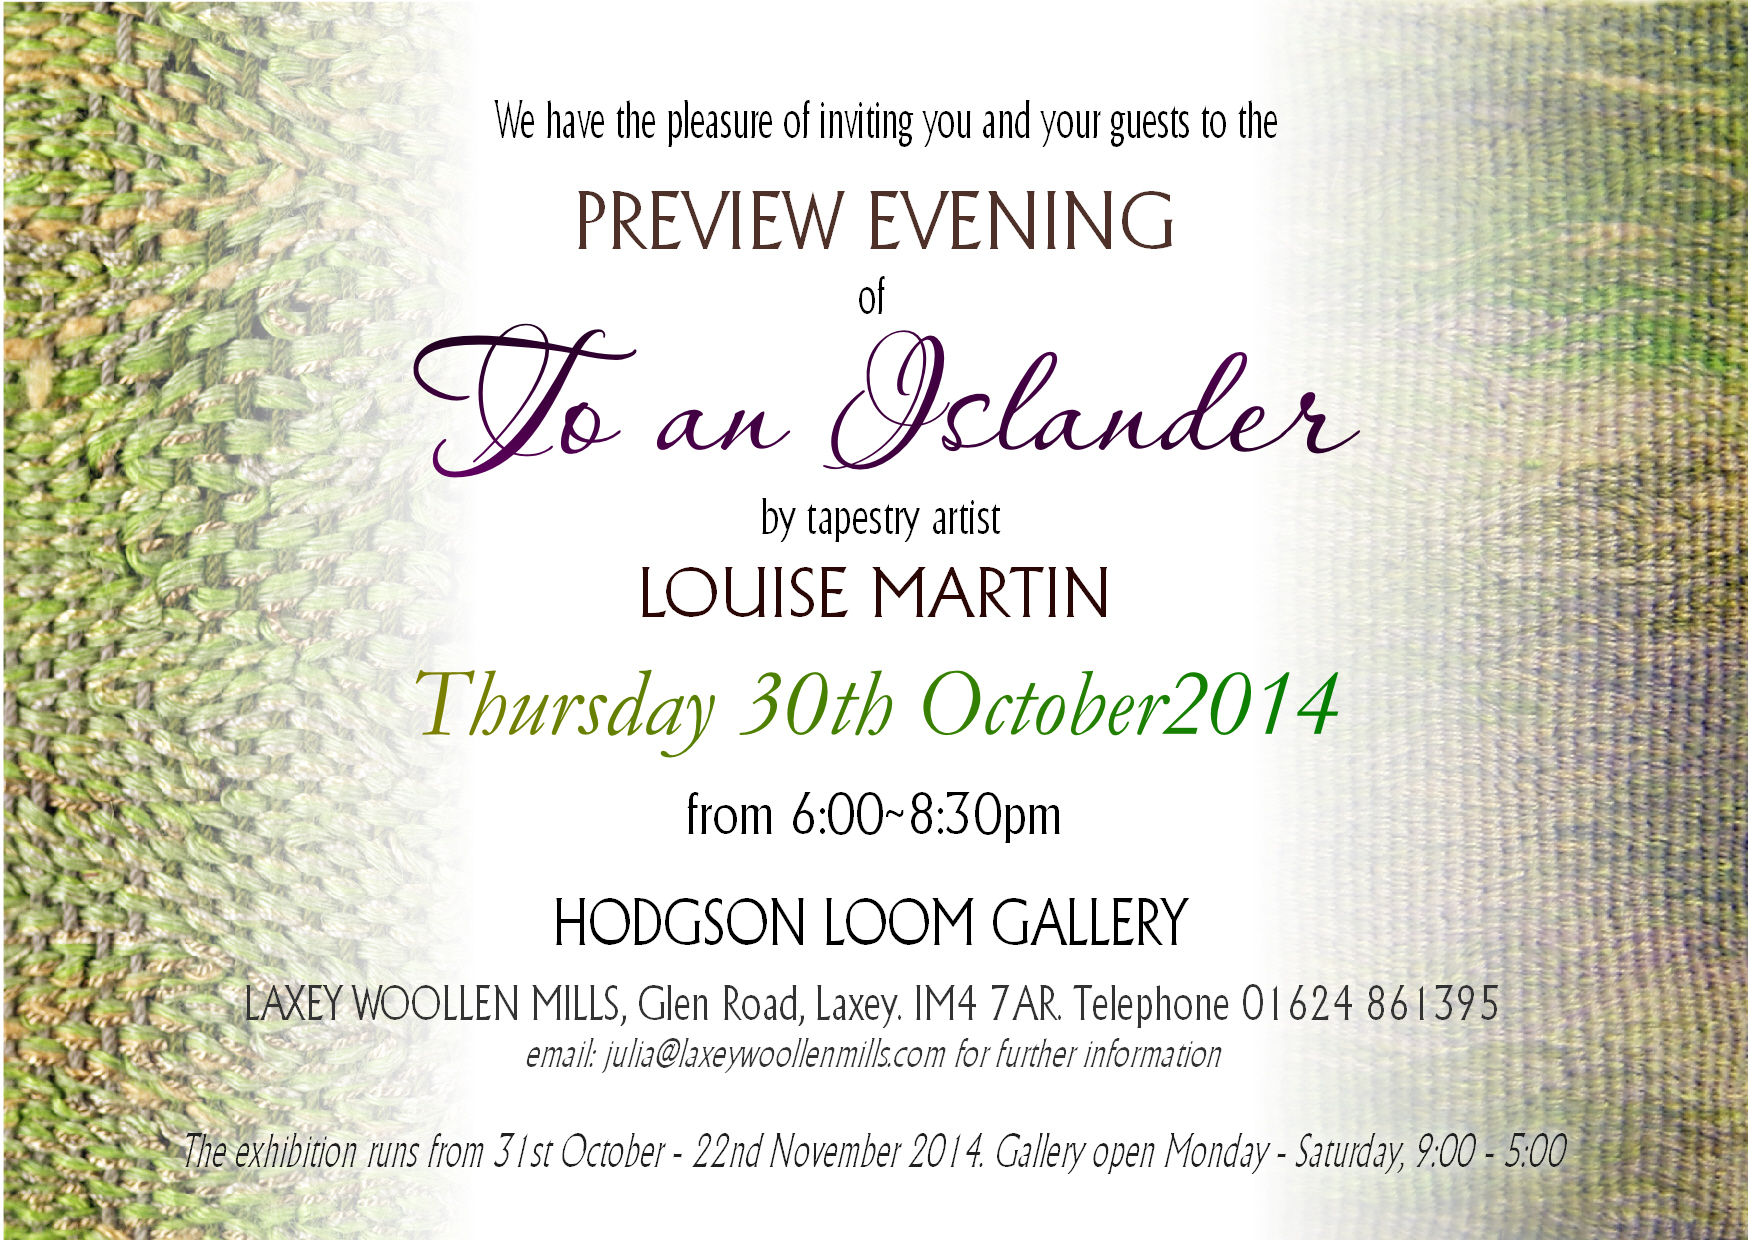 Louise Martin exhibition in Laxey, Isle of Man